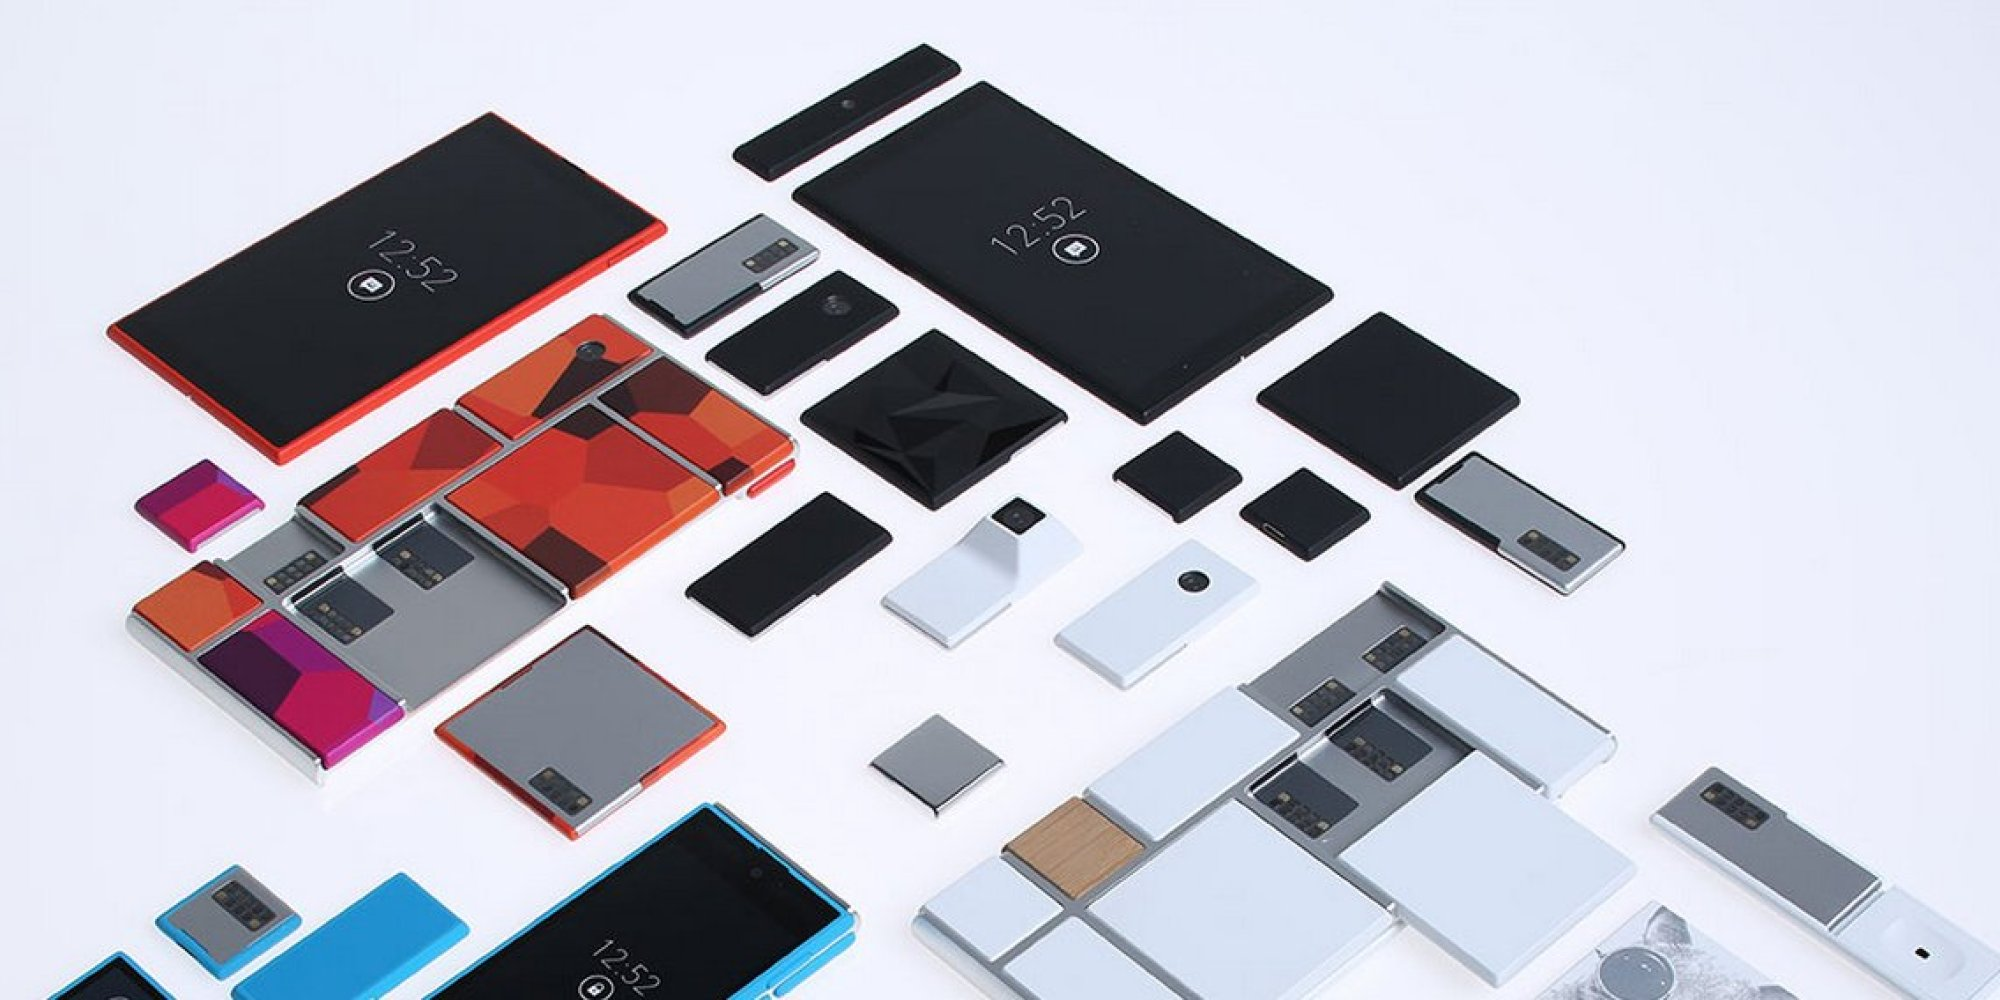 Motorola Project Ara Teams With Phonebloks To Develop Customisable Modular Smartphones | HuffPost UK